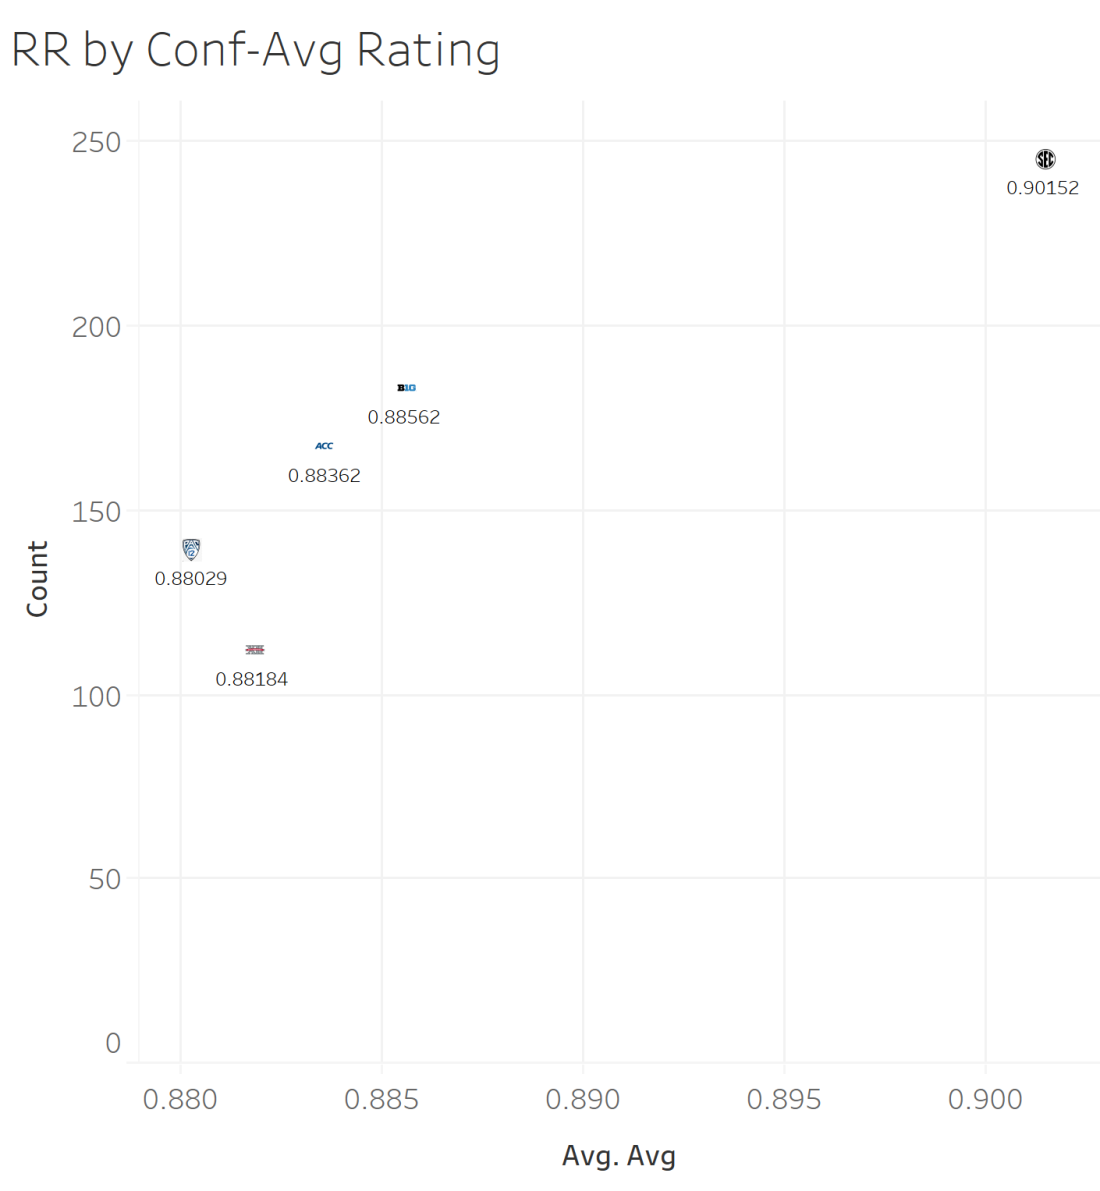 RR by Conf Avg Rating